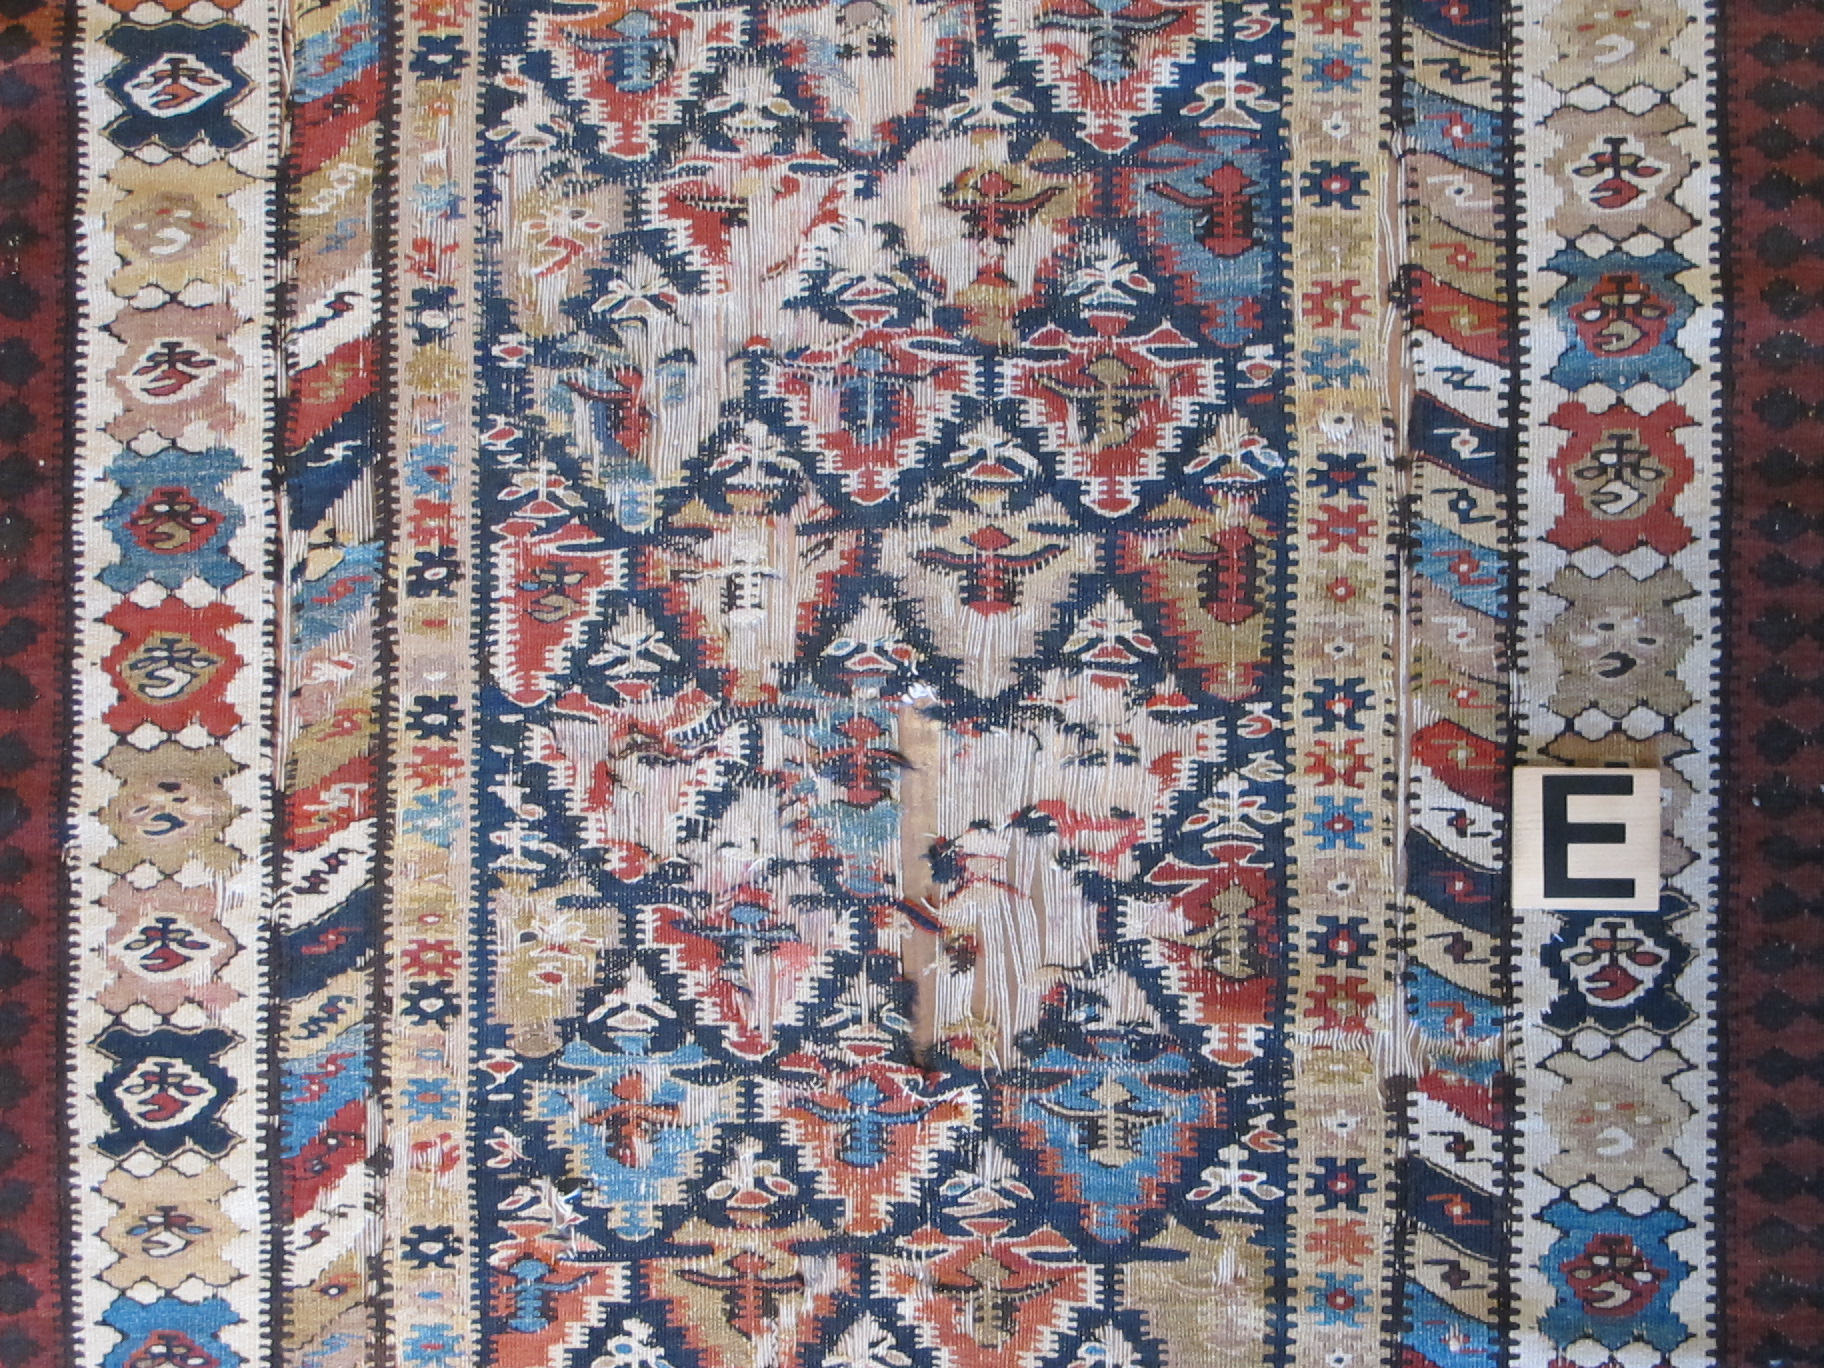 Persian Seneh Kurd kelim hall runner 4' 5 x 15' 10-before repair (6)